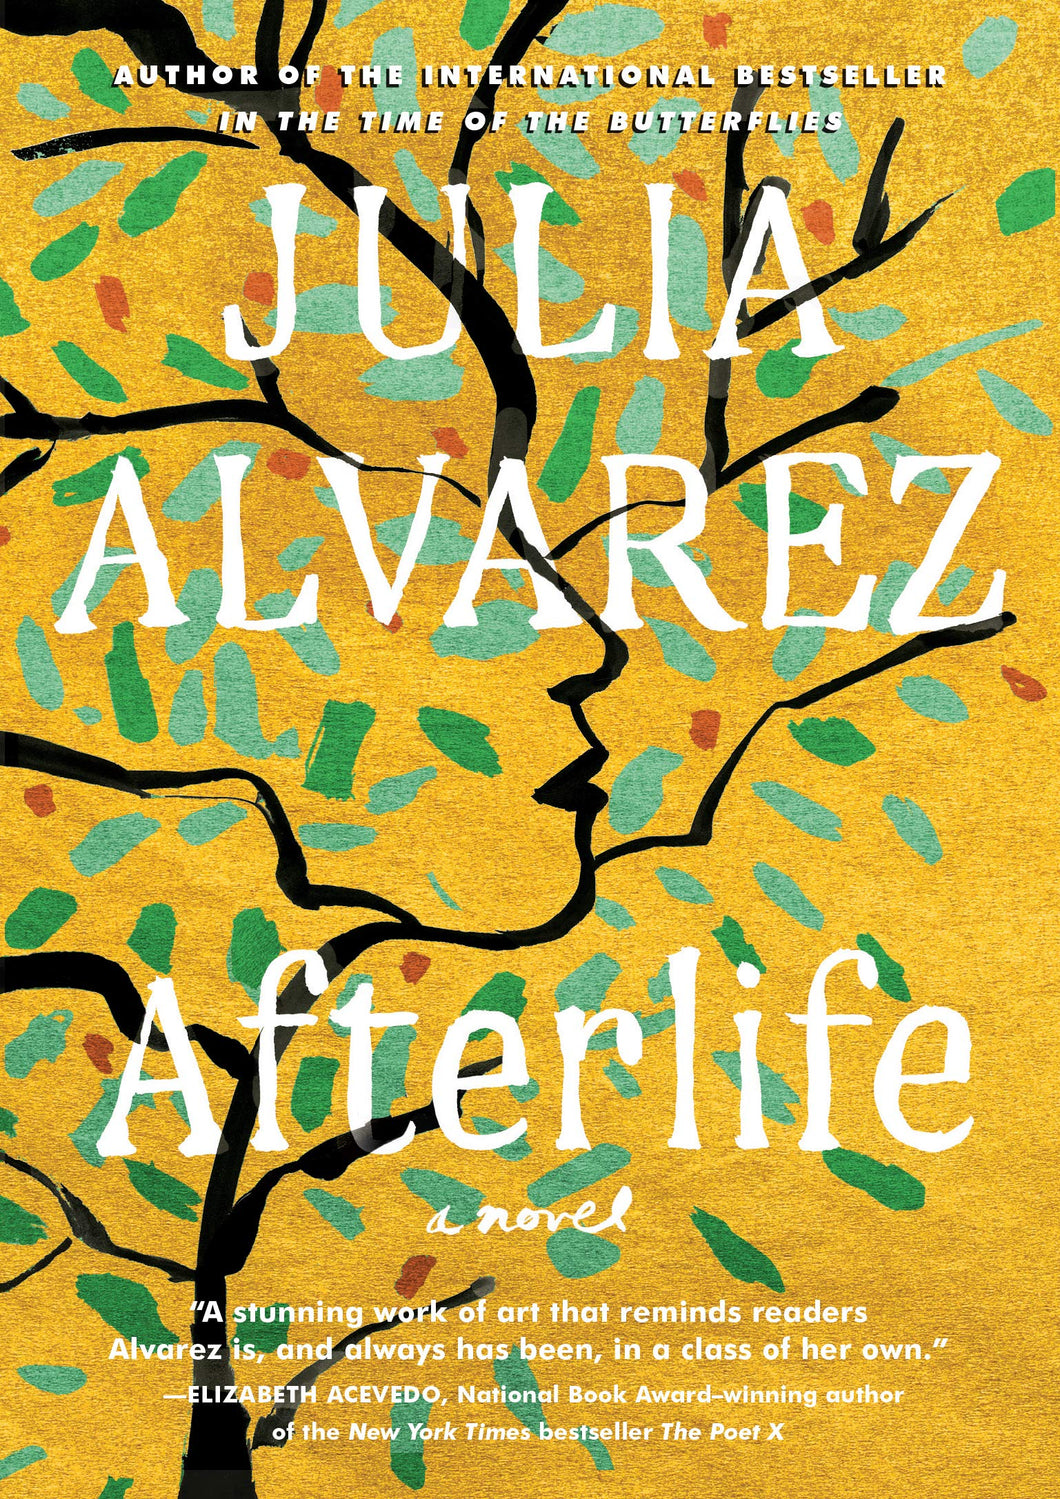 Afterlife by Julia Alvarez